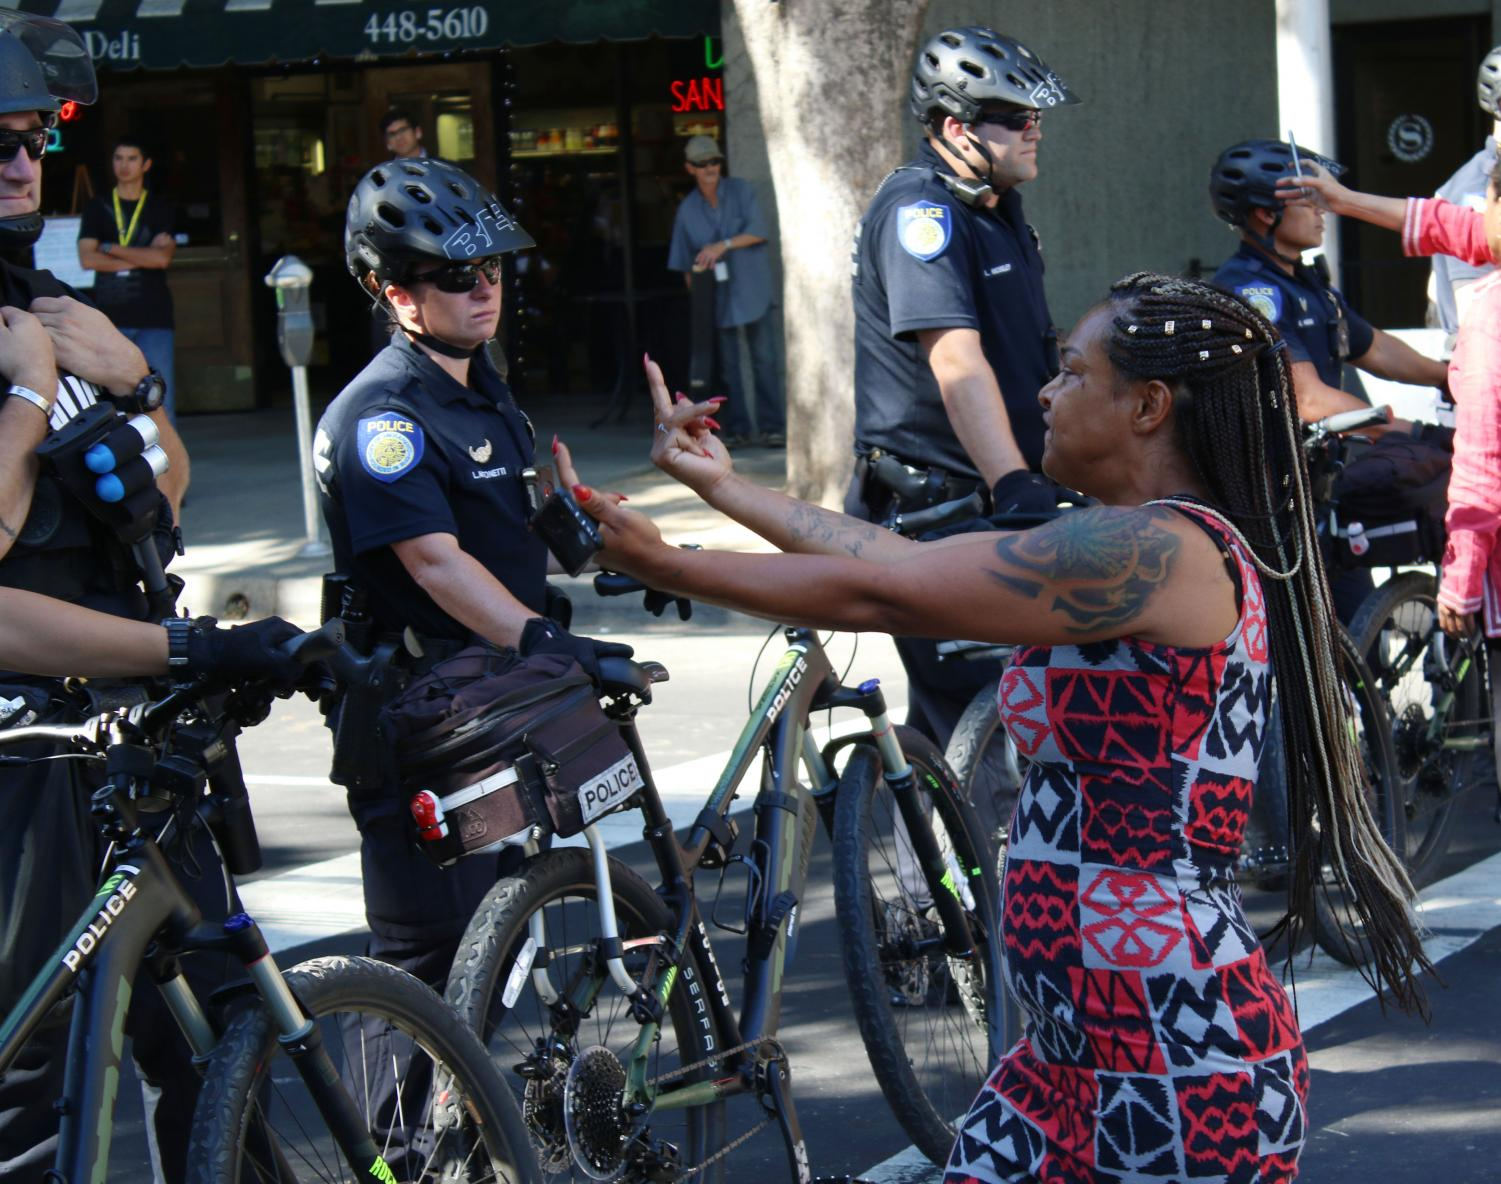 Brandy+Bains-Wood%2C+a+Sacramento+native%2C+flips+off+police+standing+guard+on+the+intersection+of+J+St.+and+13th+St.+on+Tuesday%2C+Sept.+18.+Black+Lives+Matter+protesters+were+demonstrating+outside+a+CopWest+Training+and+Expo.